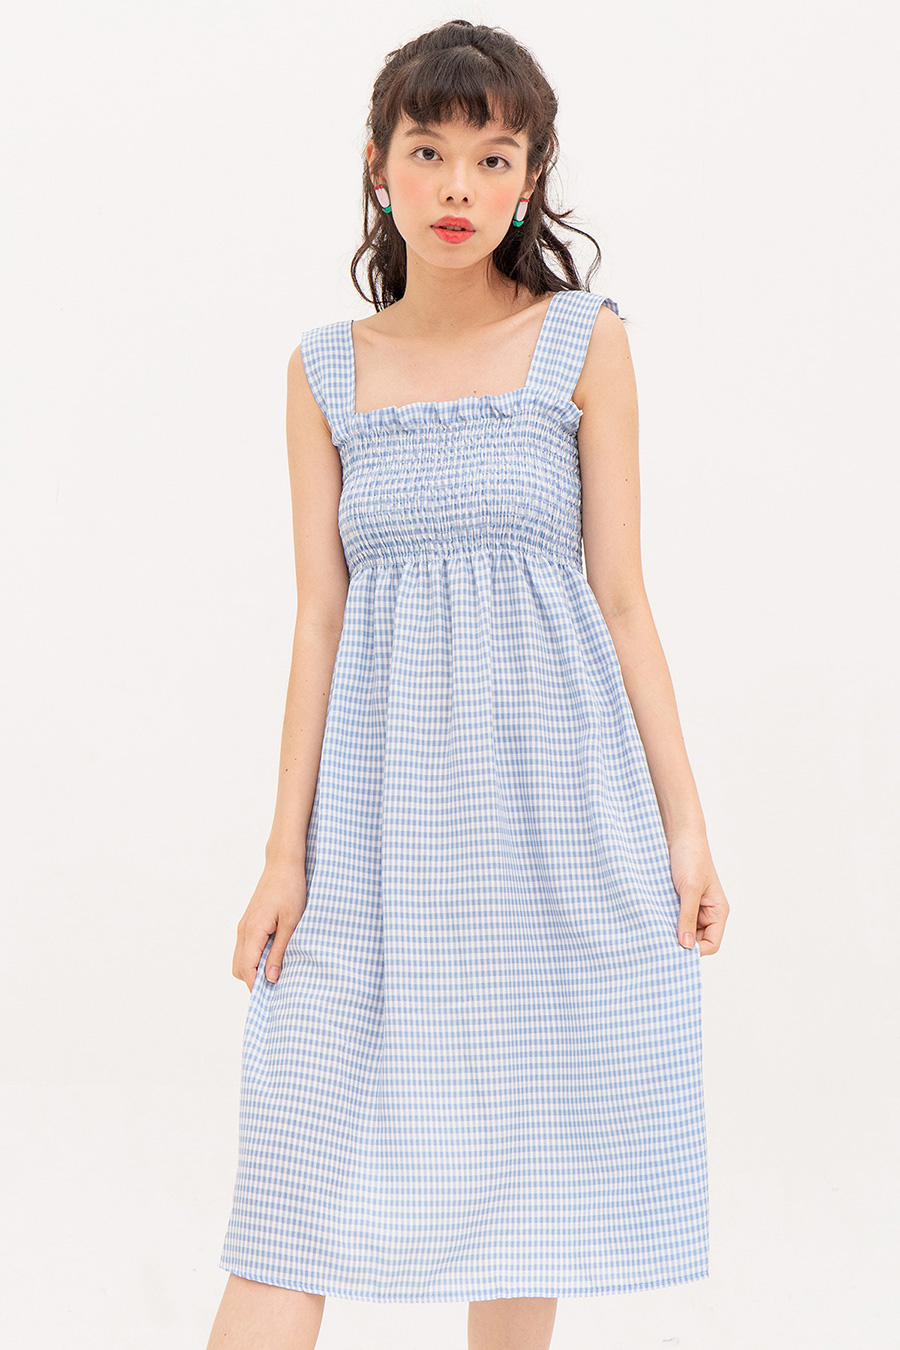 CERISE DRESS - GINGHAM